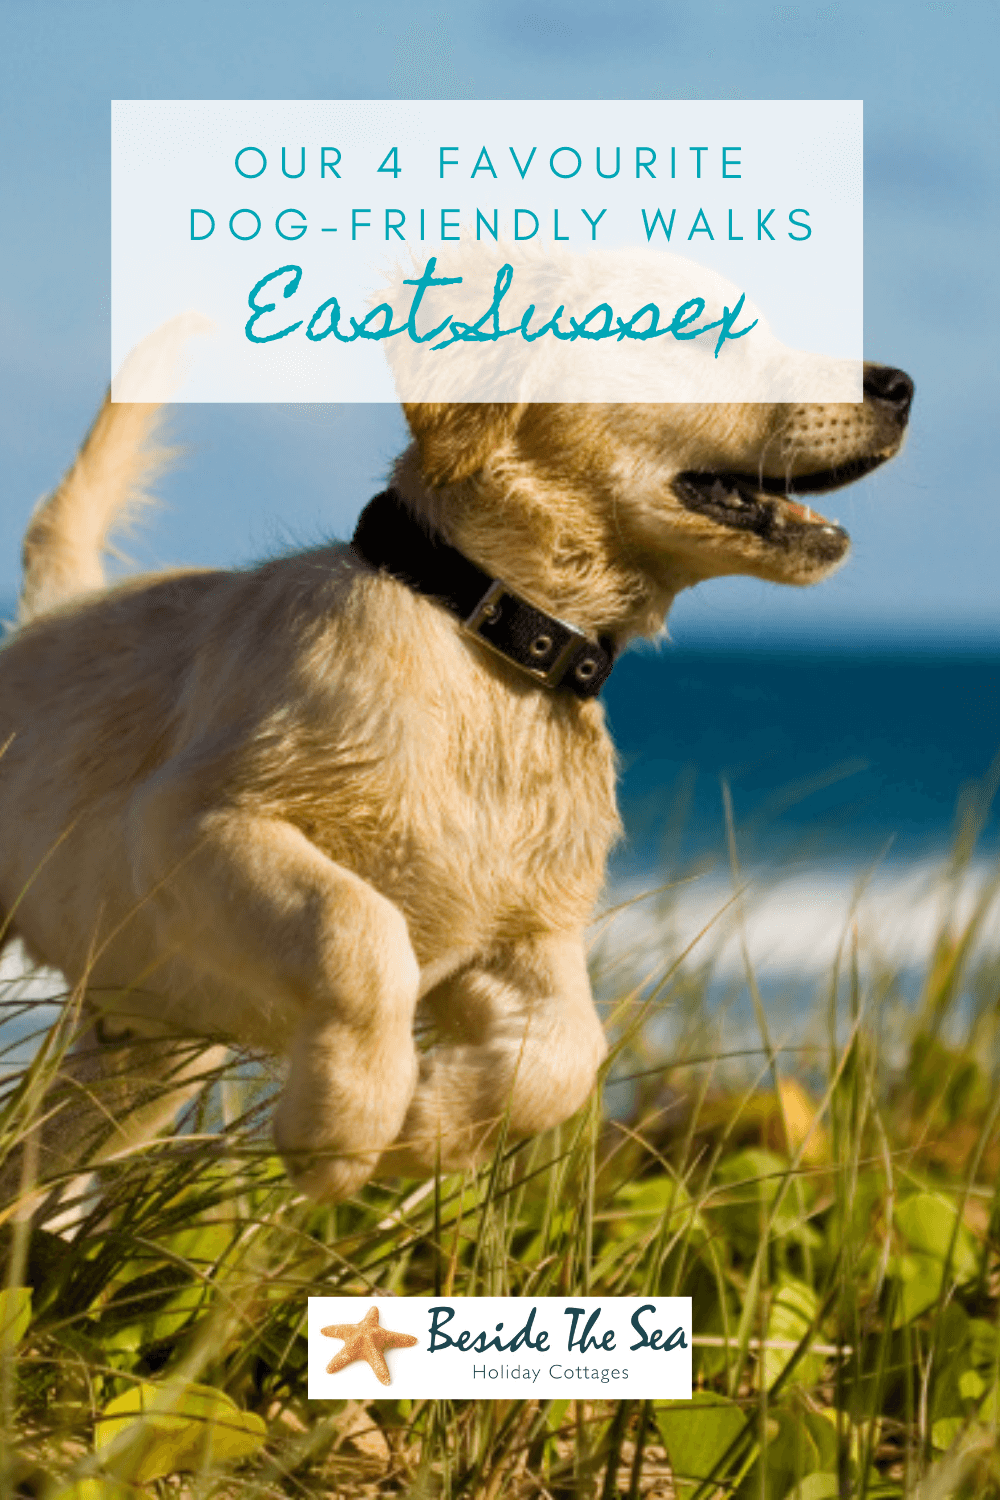 Dog friendly walks in East Sussex are one of the best ways to explore he beautiful and diverse scenery on the coast and inland.